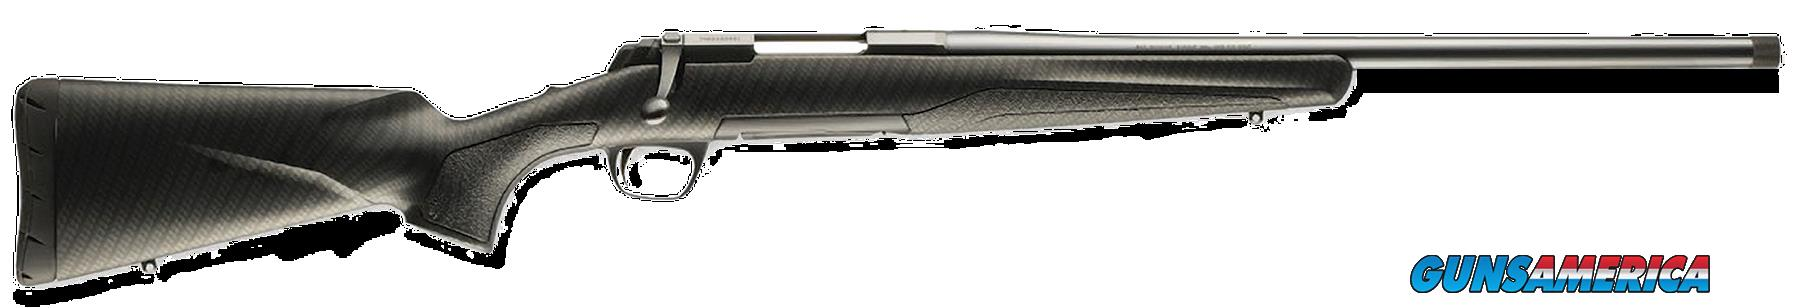 "Browning 035288208 X-Bolt Hog Stalker Bolt 223 Remington 20"" 5+1 Synthetic Carbon Fiber Stk Blued  Guns > Rifles > B Misc Rifles"